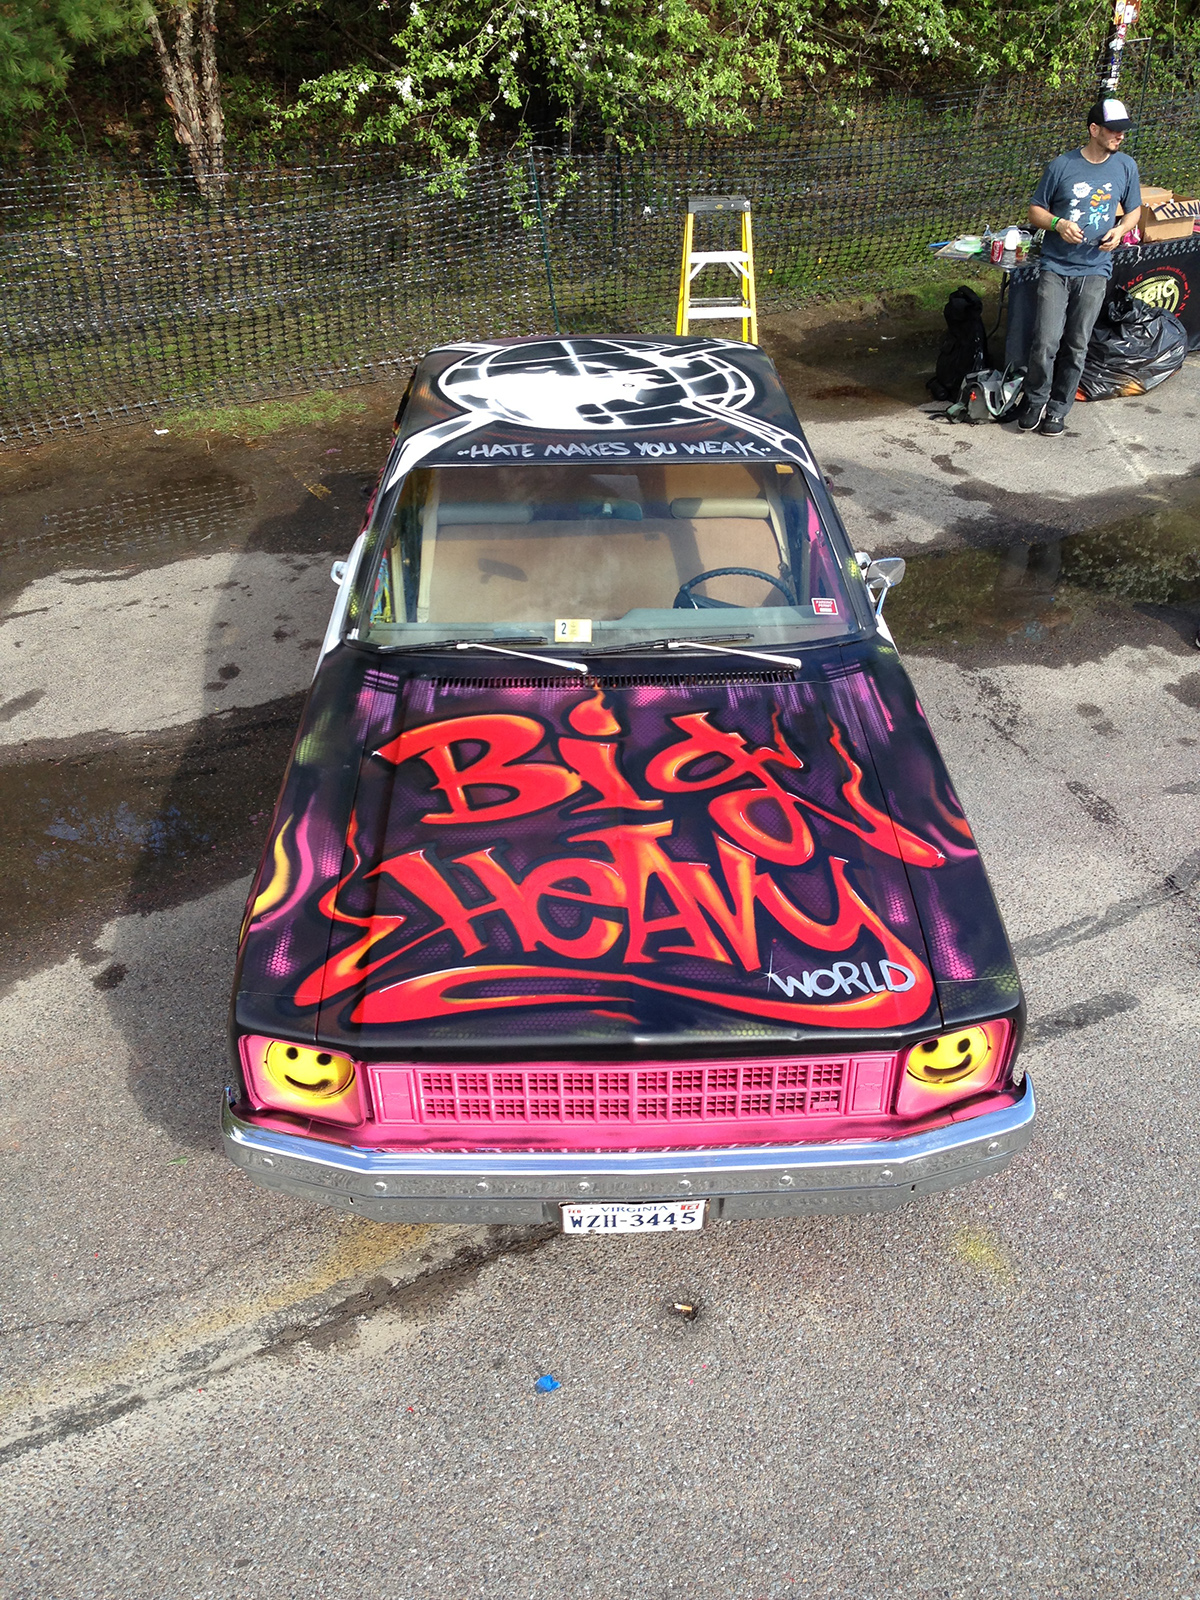 Big Heavy World Demolition Derby Car - 2015